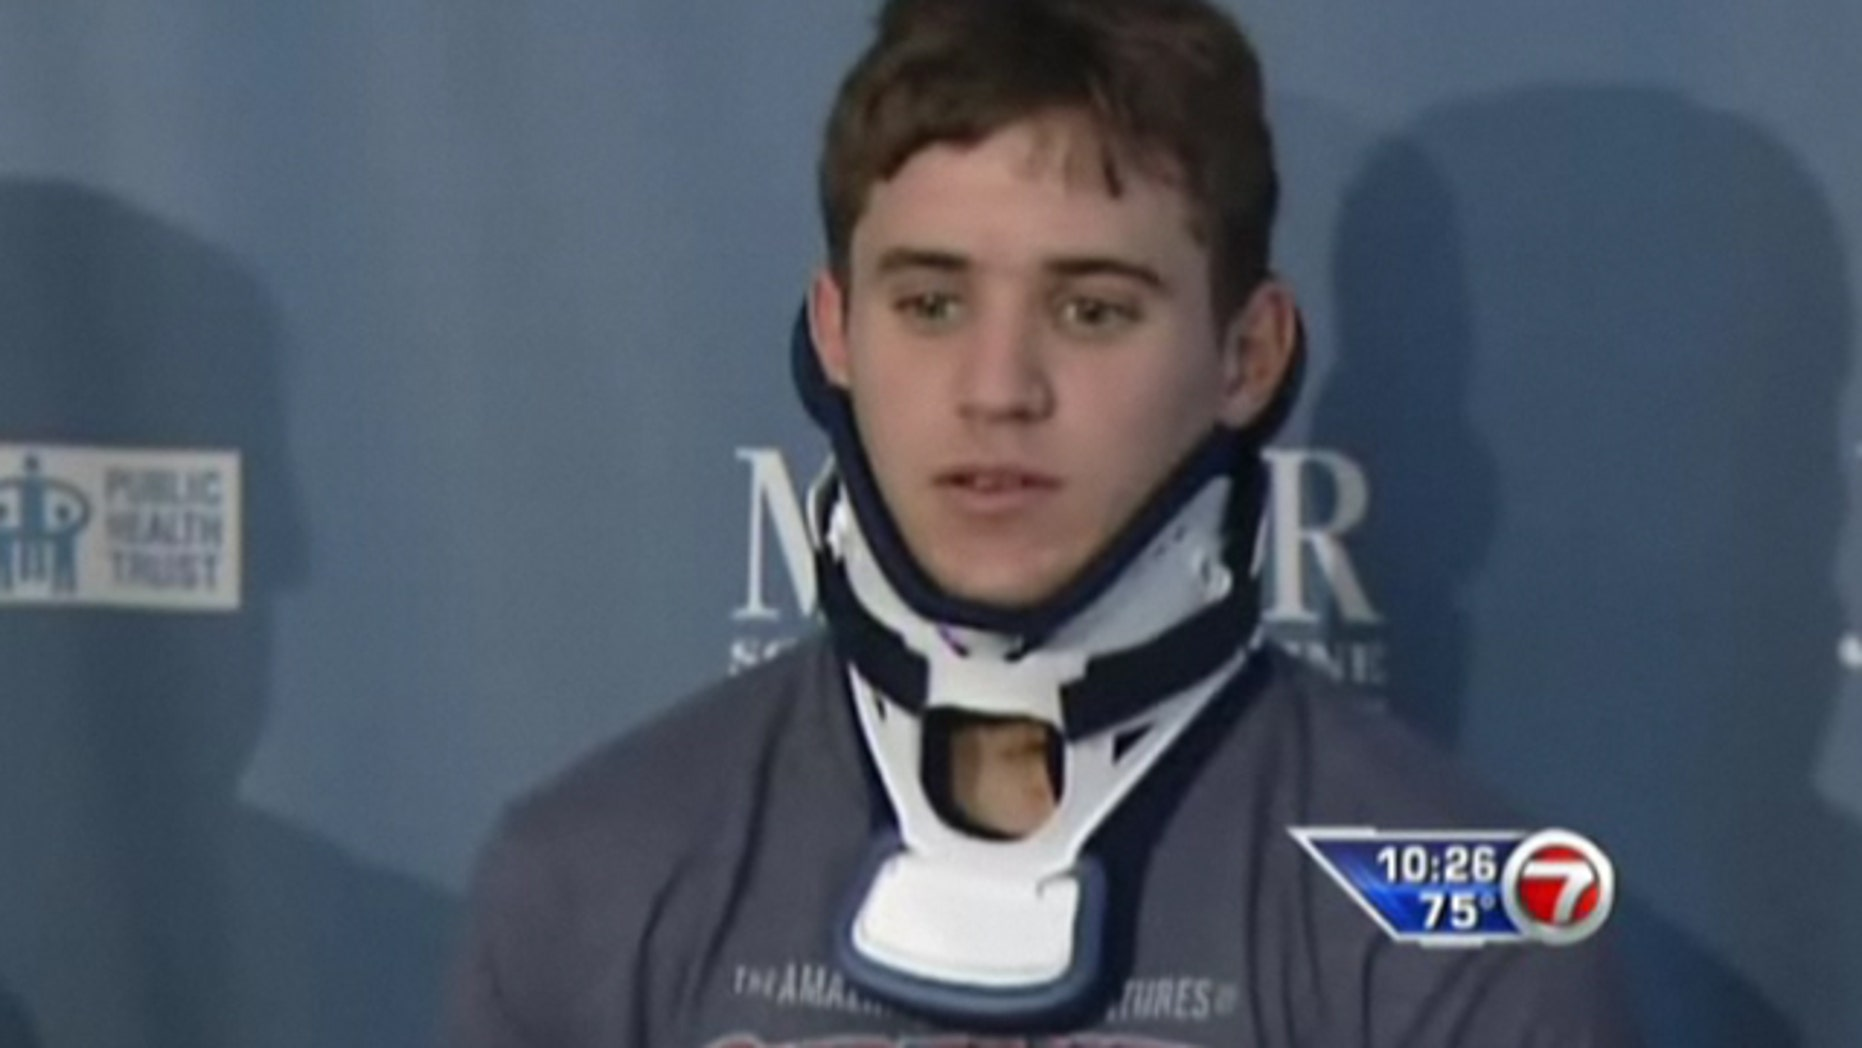 Jorge Valdez, 20, was almost paralyzed during a routine practice for tryouts for a Cirque du Soleil show in Las Vegas.